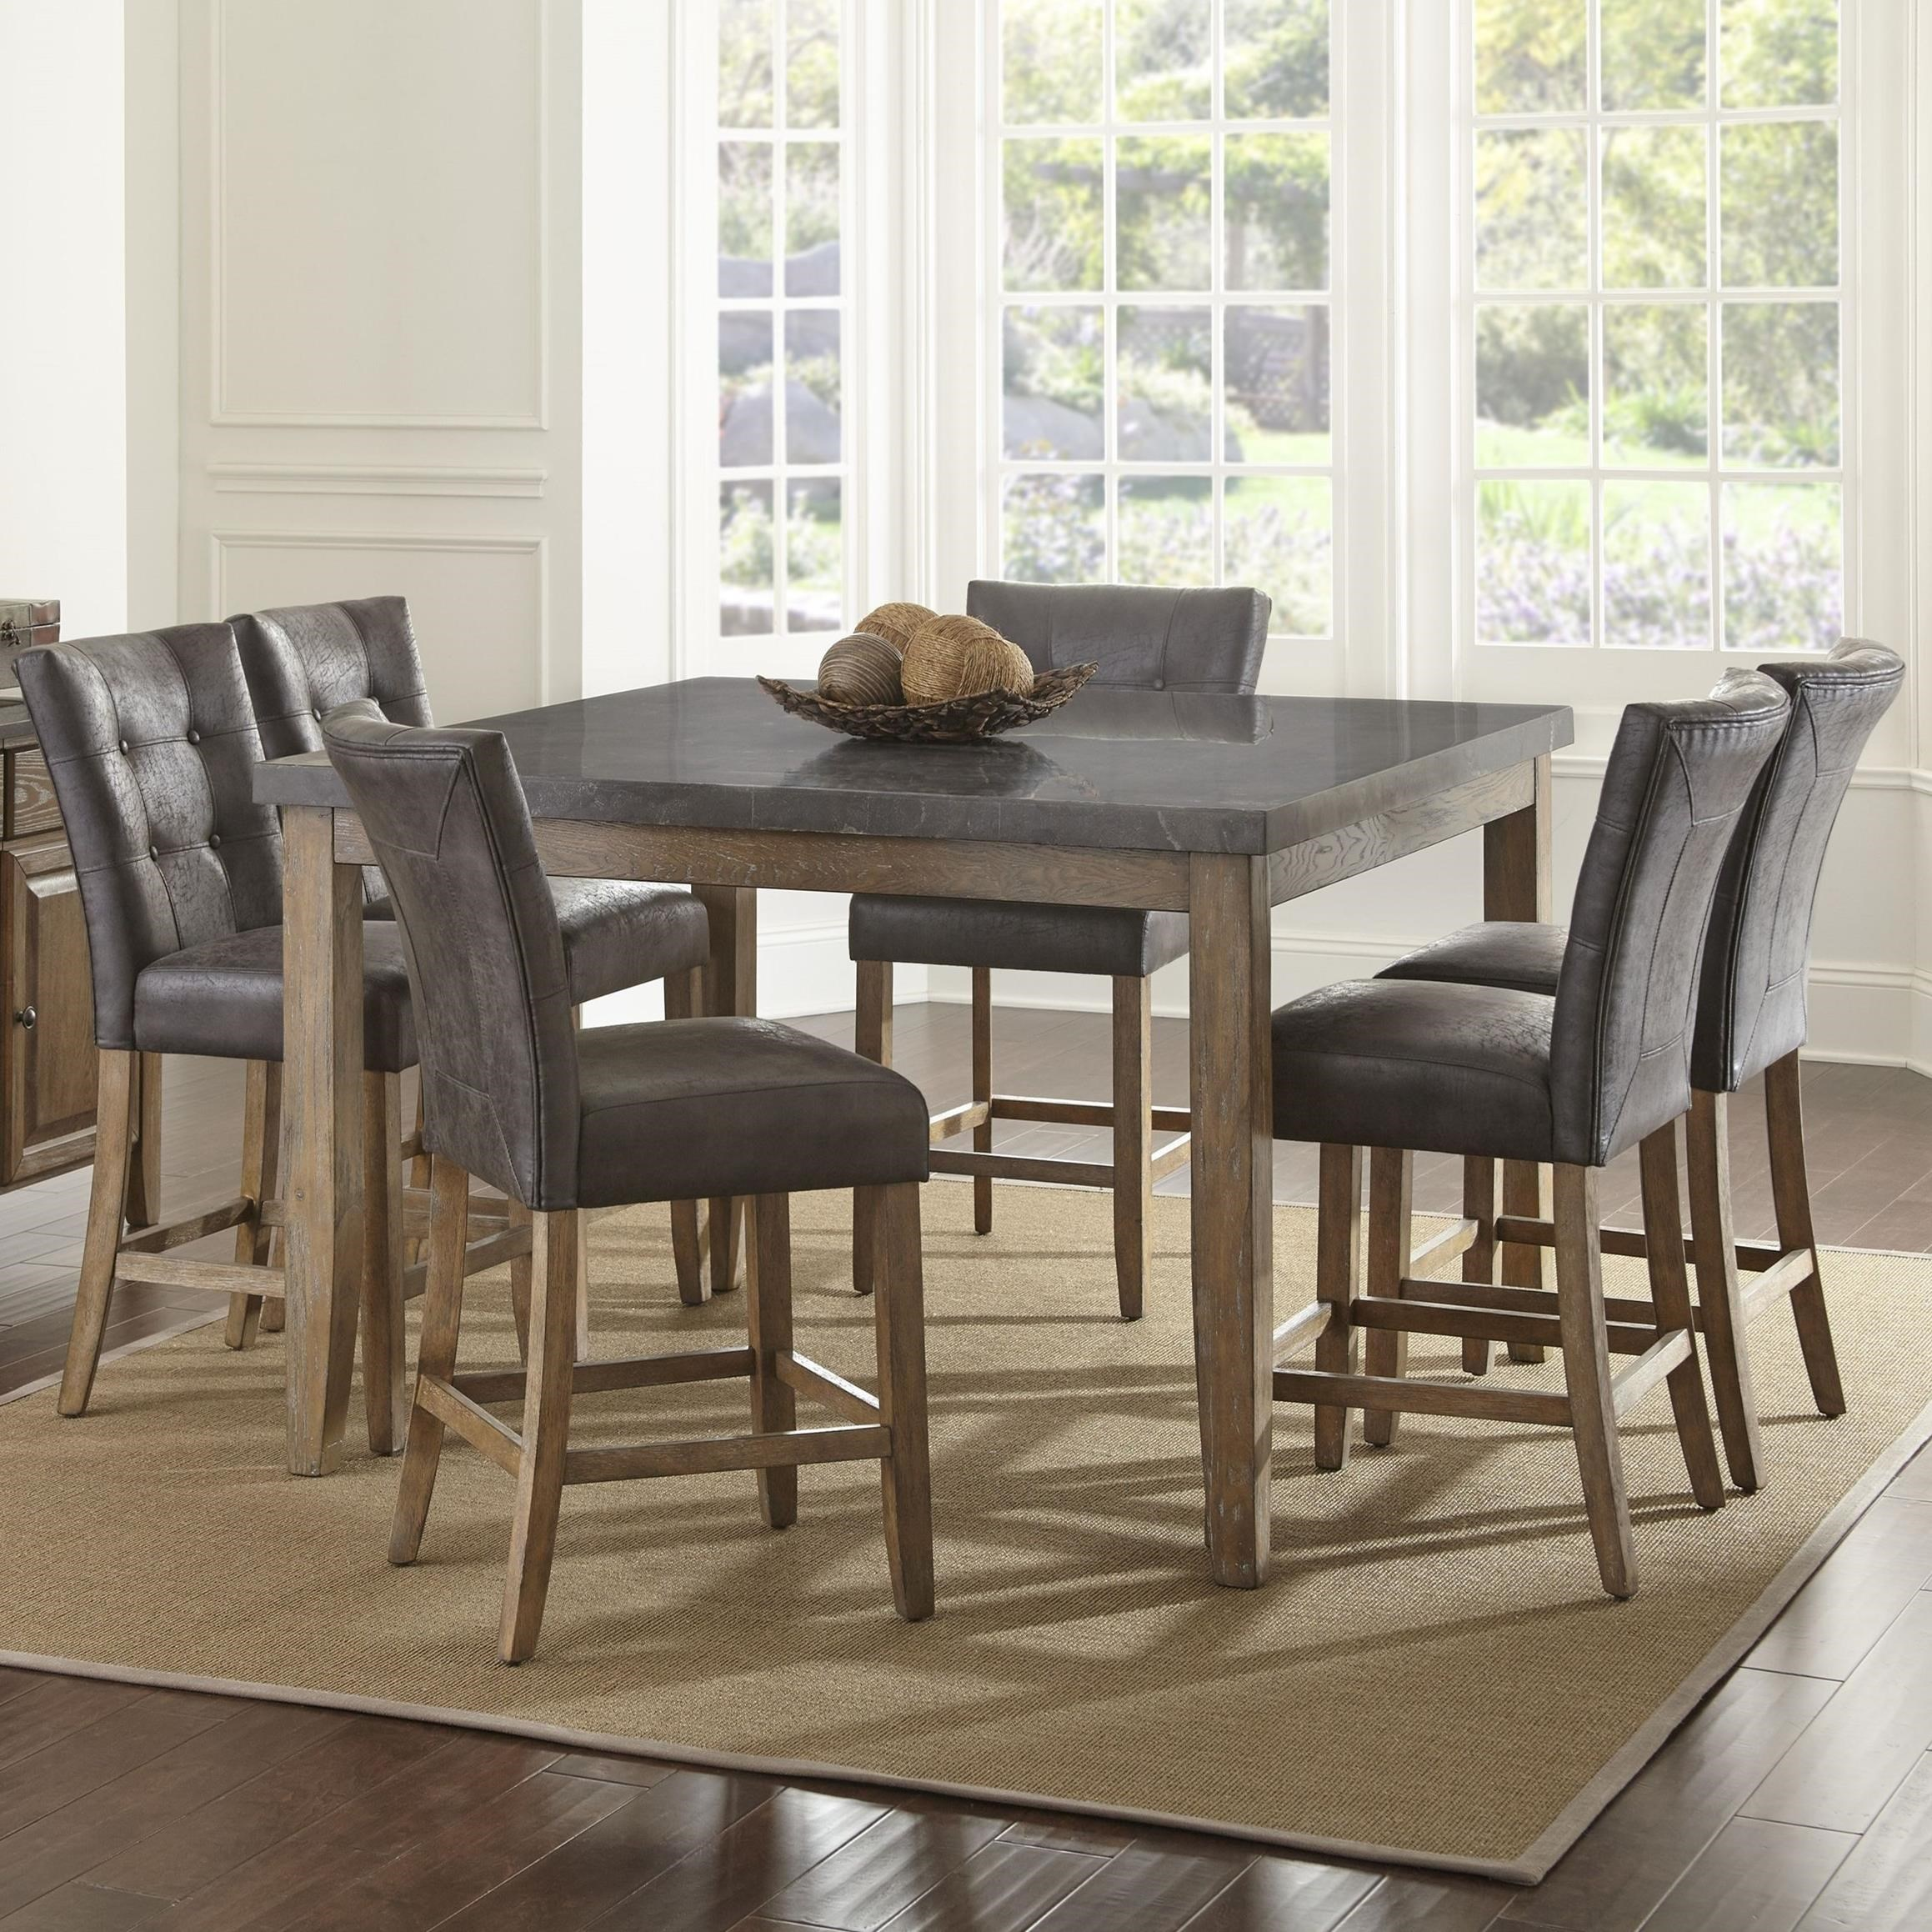 Steve silver debby 7 piece transitional square table and for Dining room tables american furniture warehouse